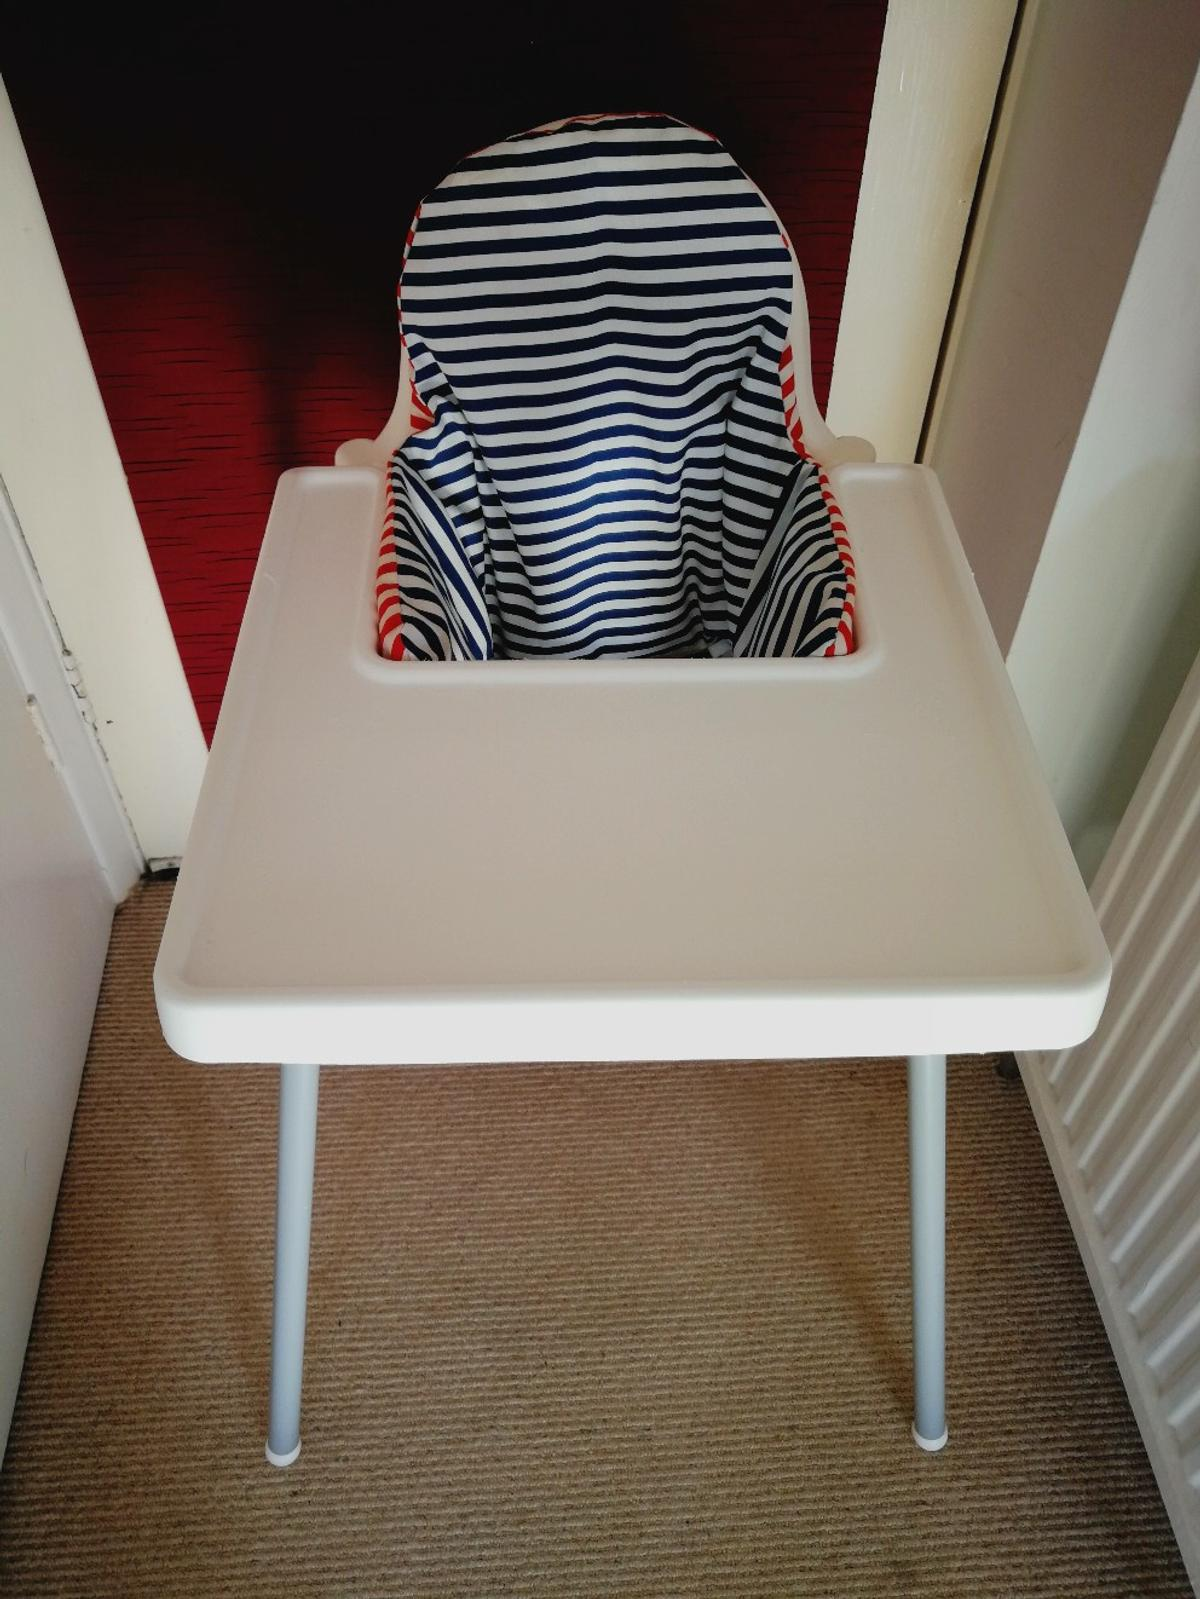 Ikea High Chair Cushion In Sw1w Westminster For 8 00 For Sale